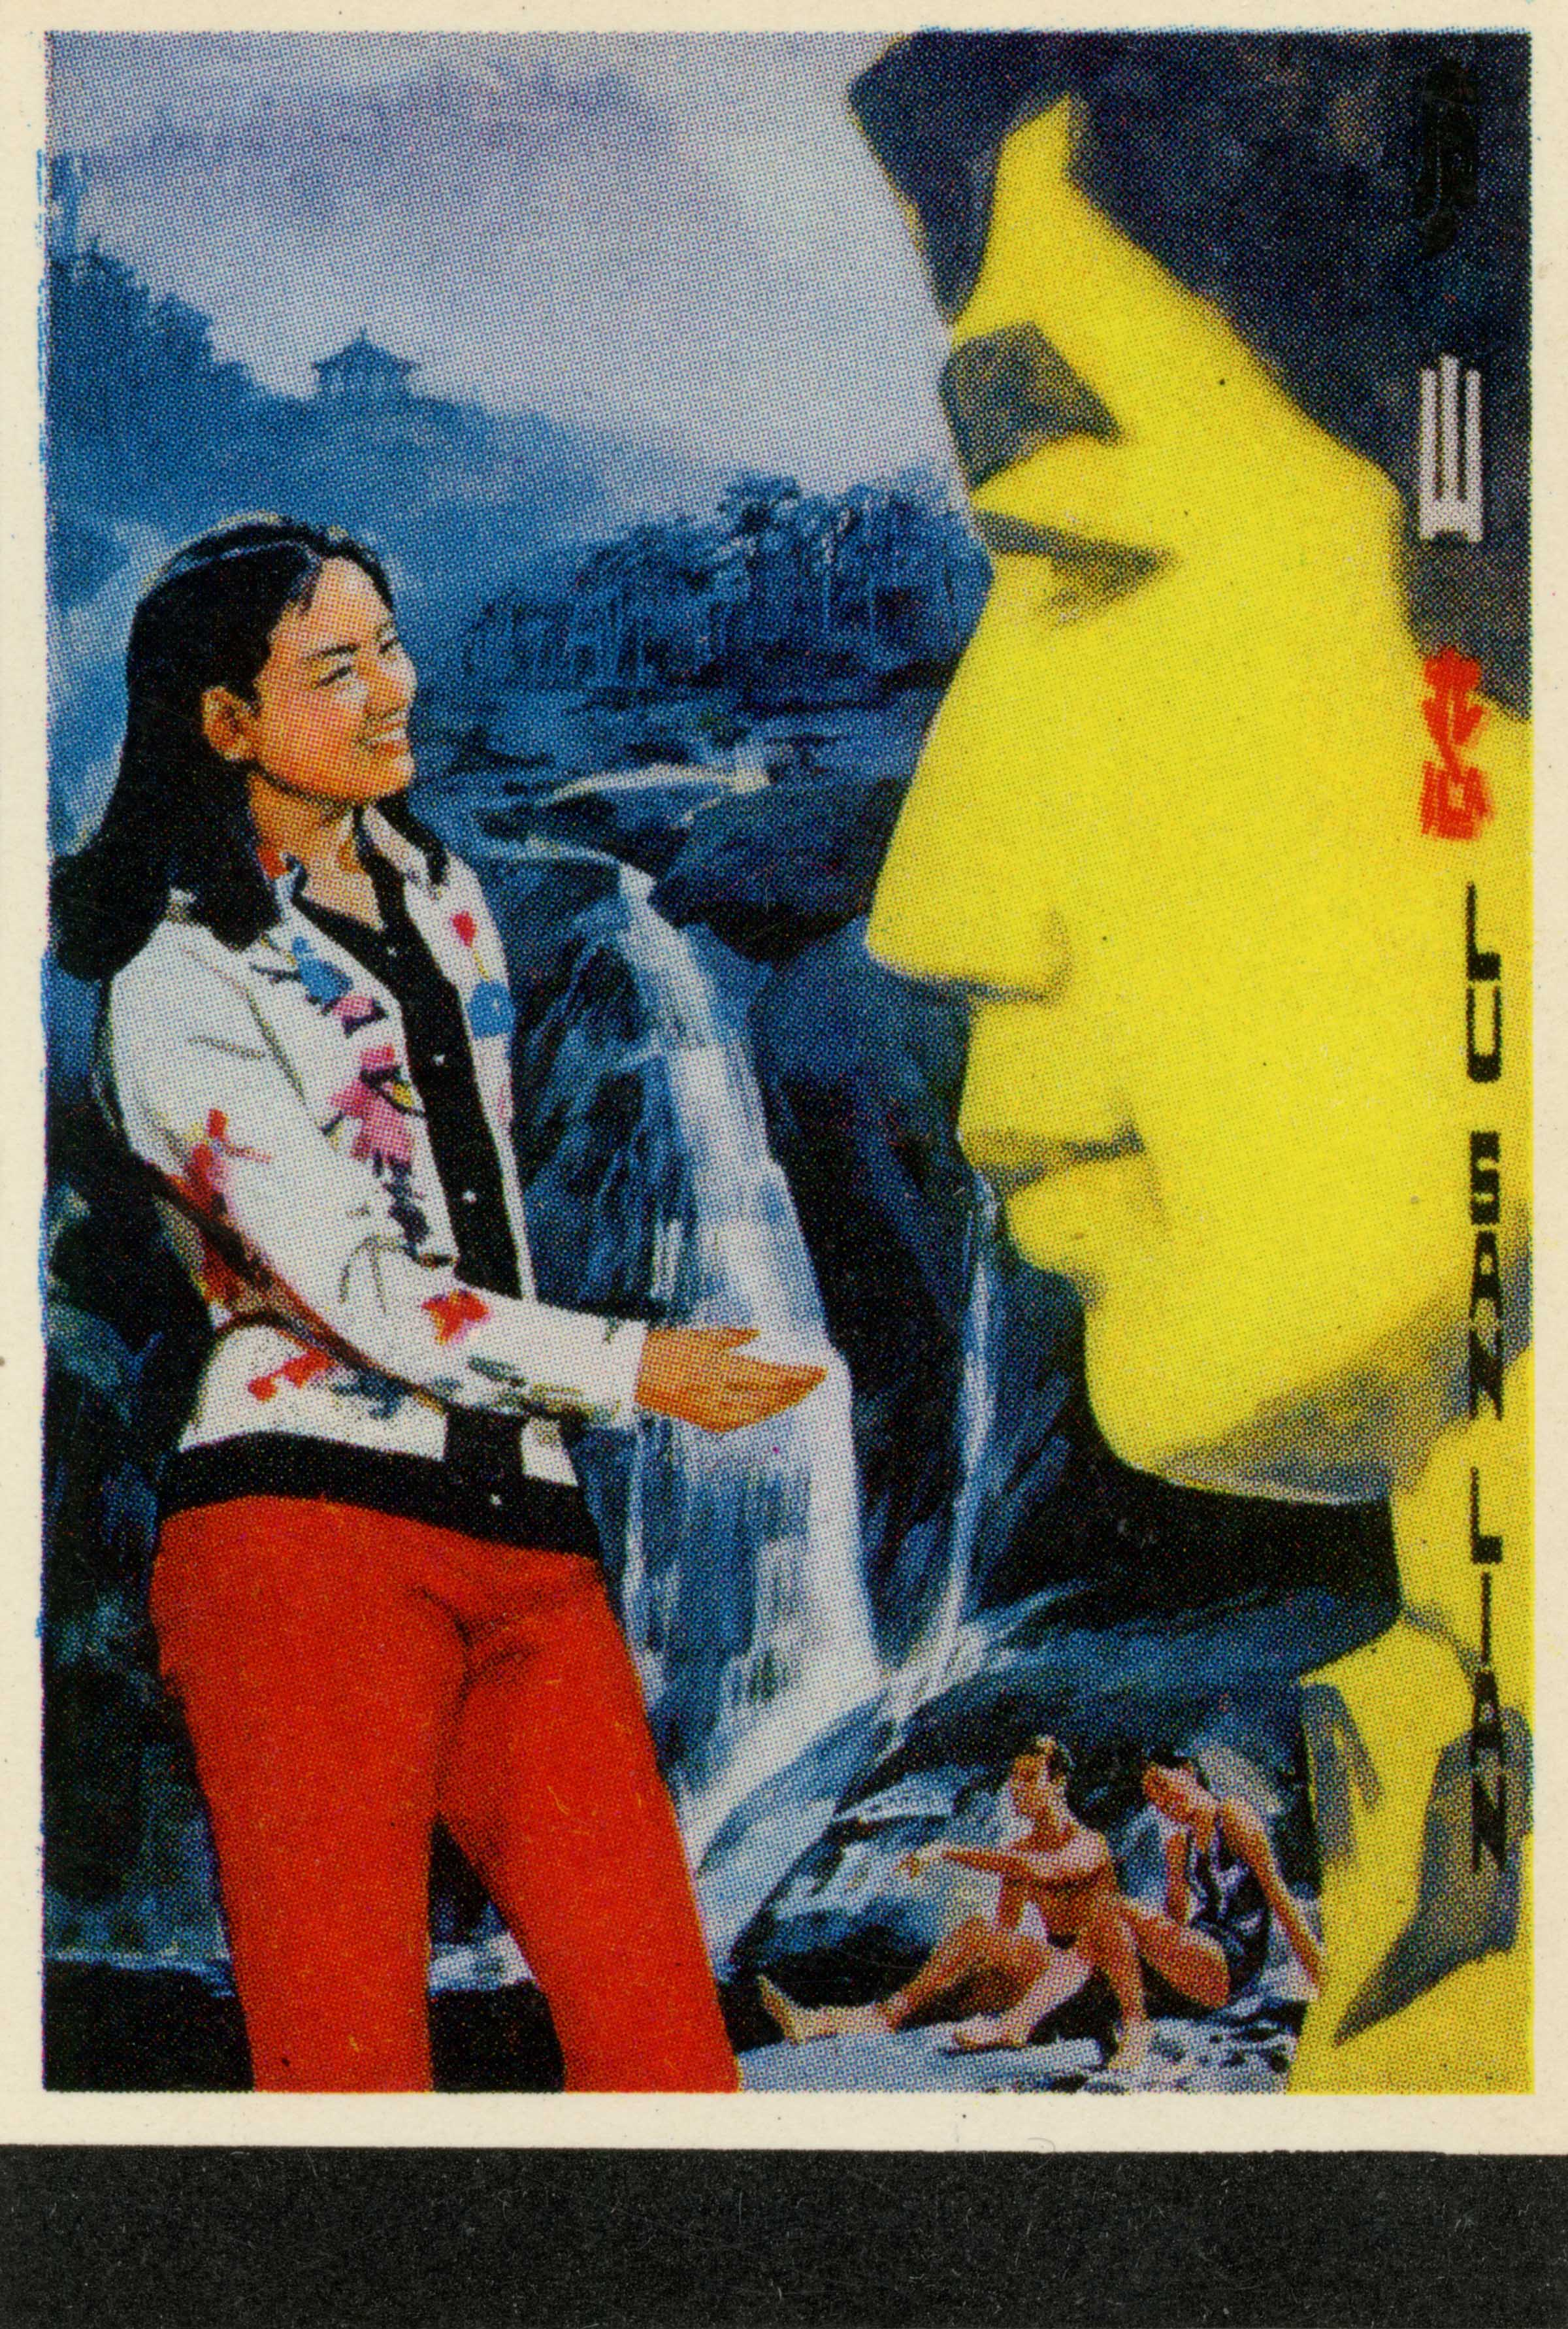 """Entirely shot in Lushan Mountain, the movie """"Romance on Lushan Mountain"""" (Huang Zumo, 1980) recalls the love story between the son of a People's Liberation Army general and the daughter of a Kuomintang general who fled to the USA. Released just four years after Mao's death and the end of the Cultural Revolution, a peck on the cheek broke the big-screen taboo on kissing, in place since 1949, and 43 different outfits made lead actress Zhang Yu a national fashion icon. In 2017, Chinese newspaper  People's Daily  estimated that the film has been watched by 400 million people."""